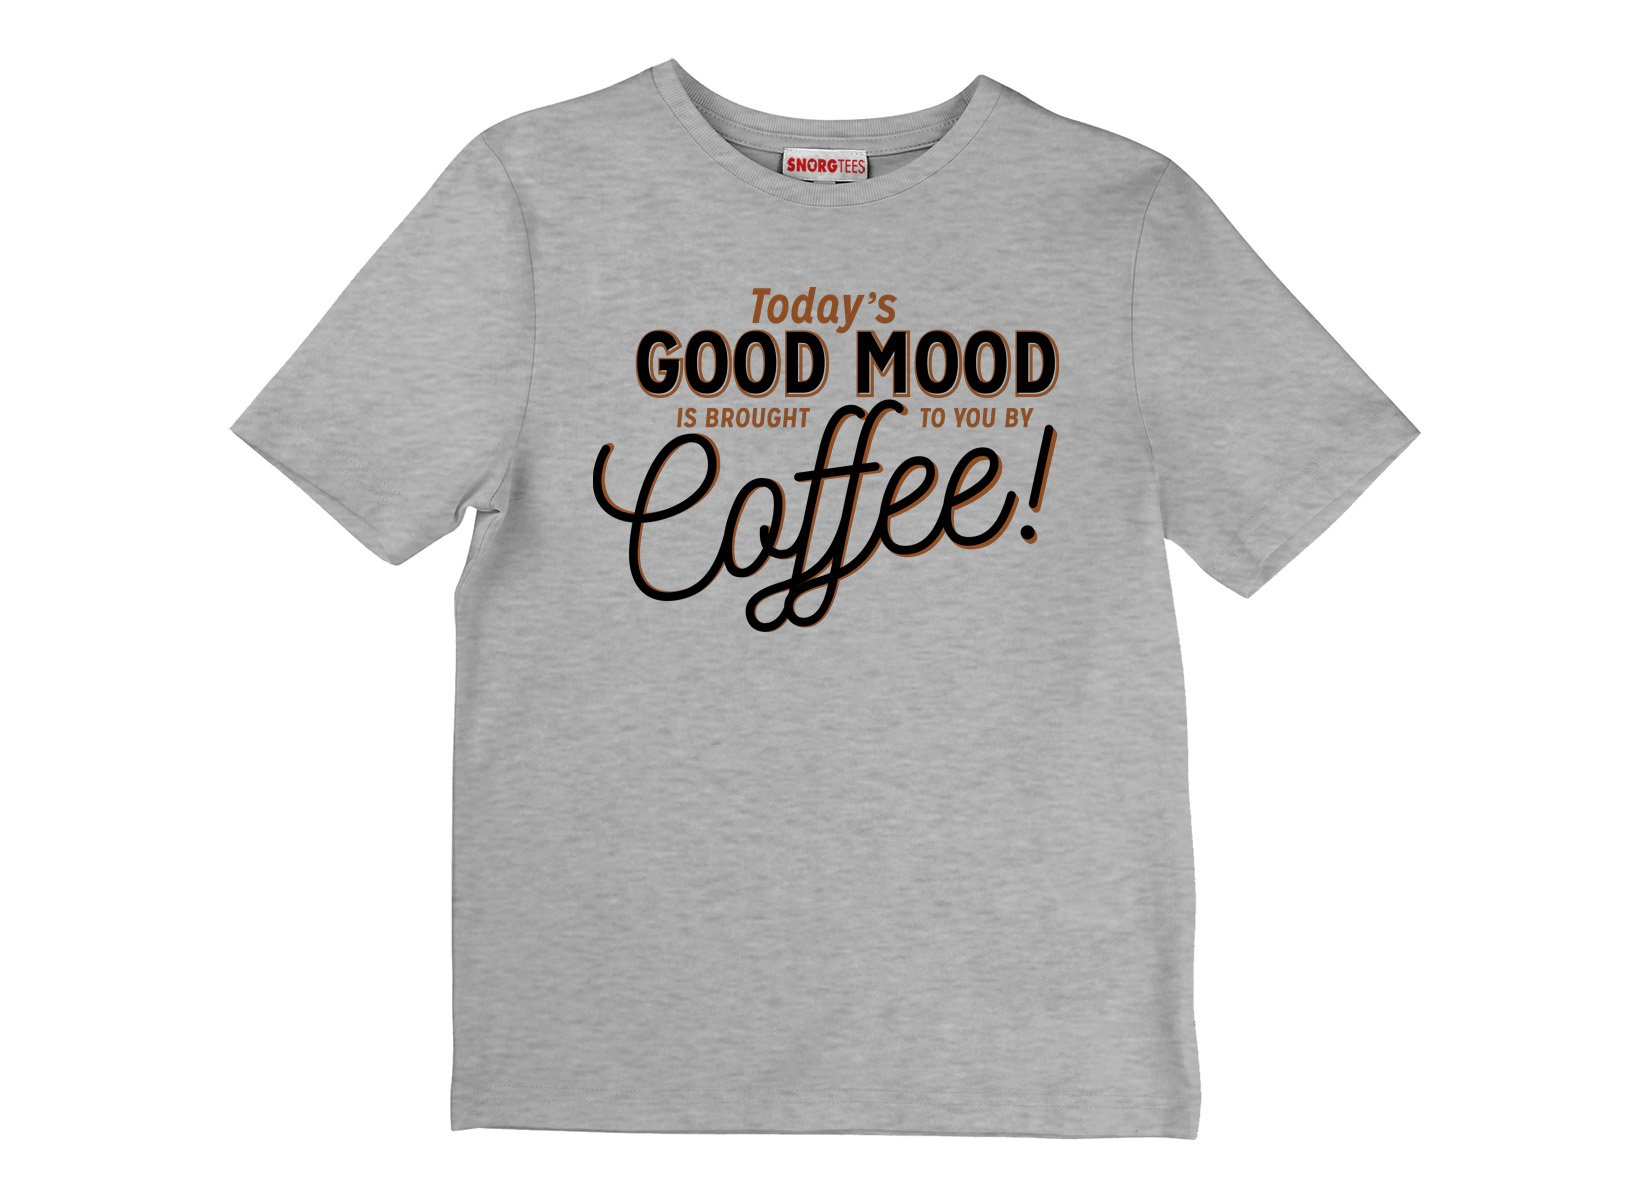 Today's Good Mood on Kids T-Shirt